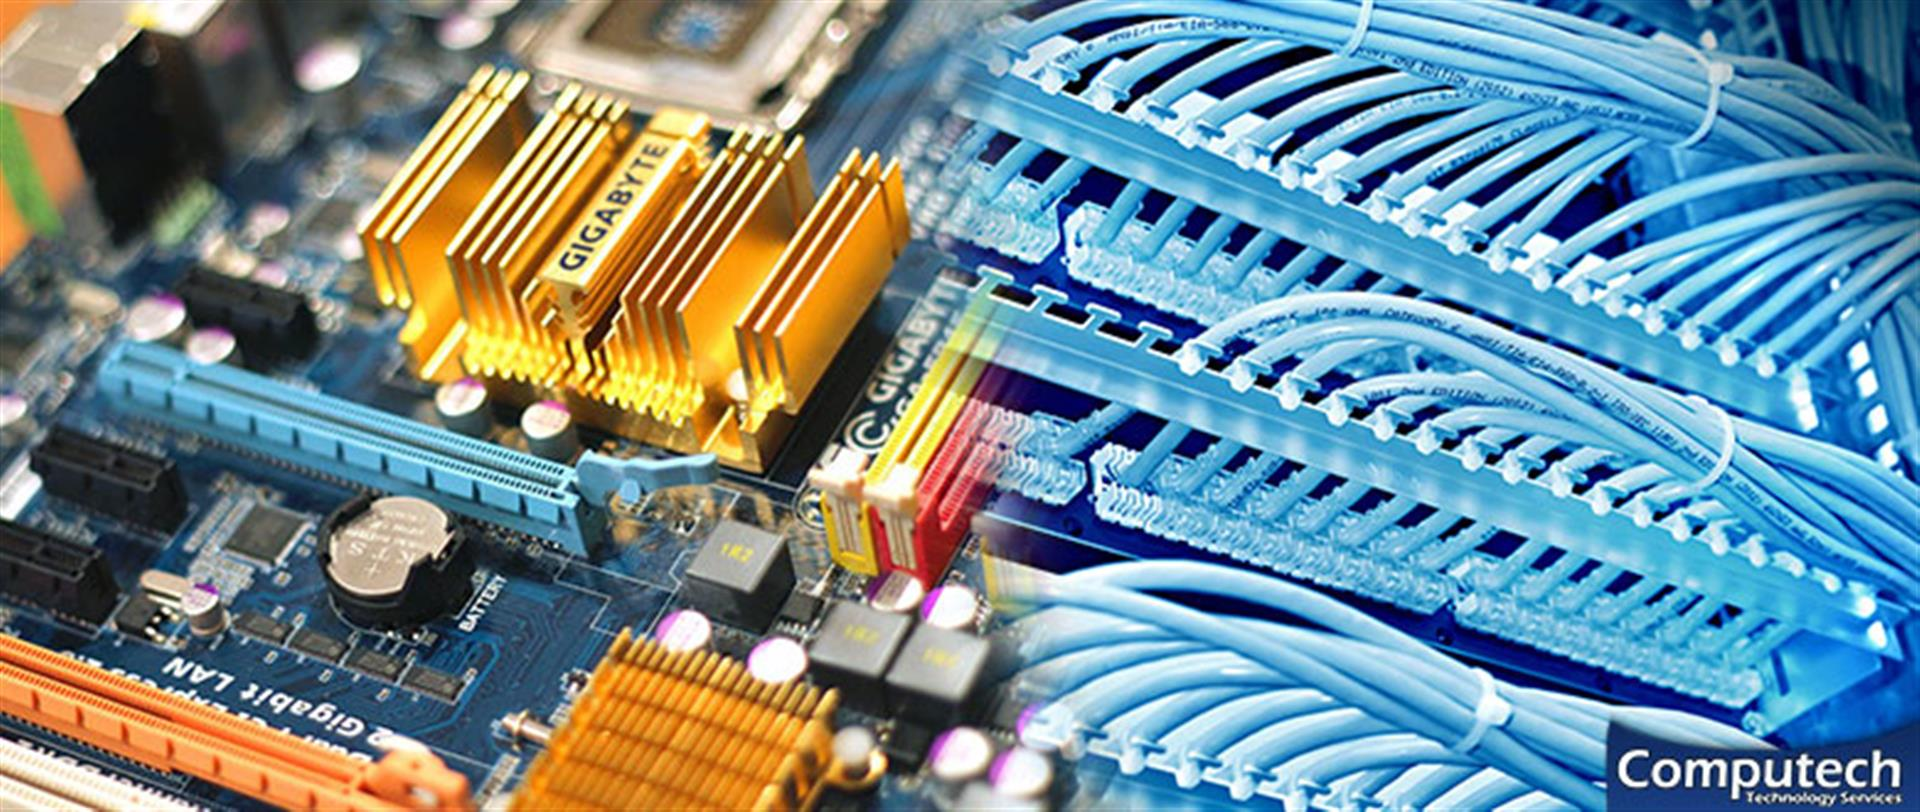 Dothan Alabama Onsite Computer PC & Printer Repair, Network, Voice & Data Cabling Services